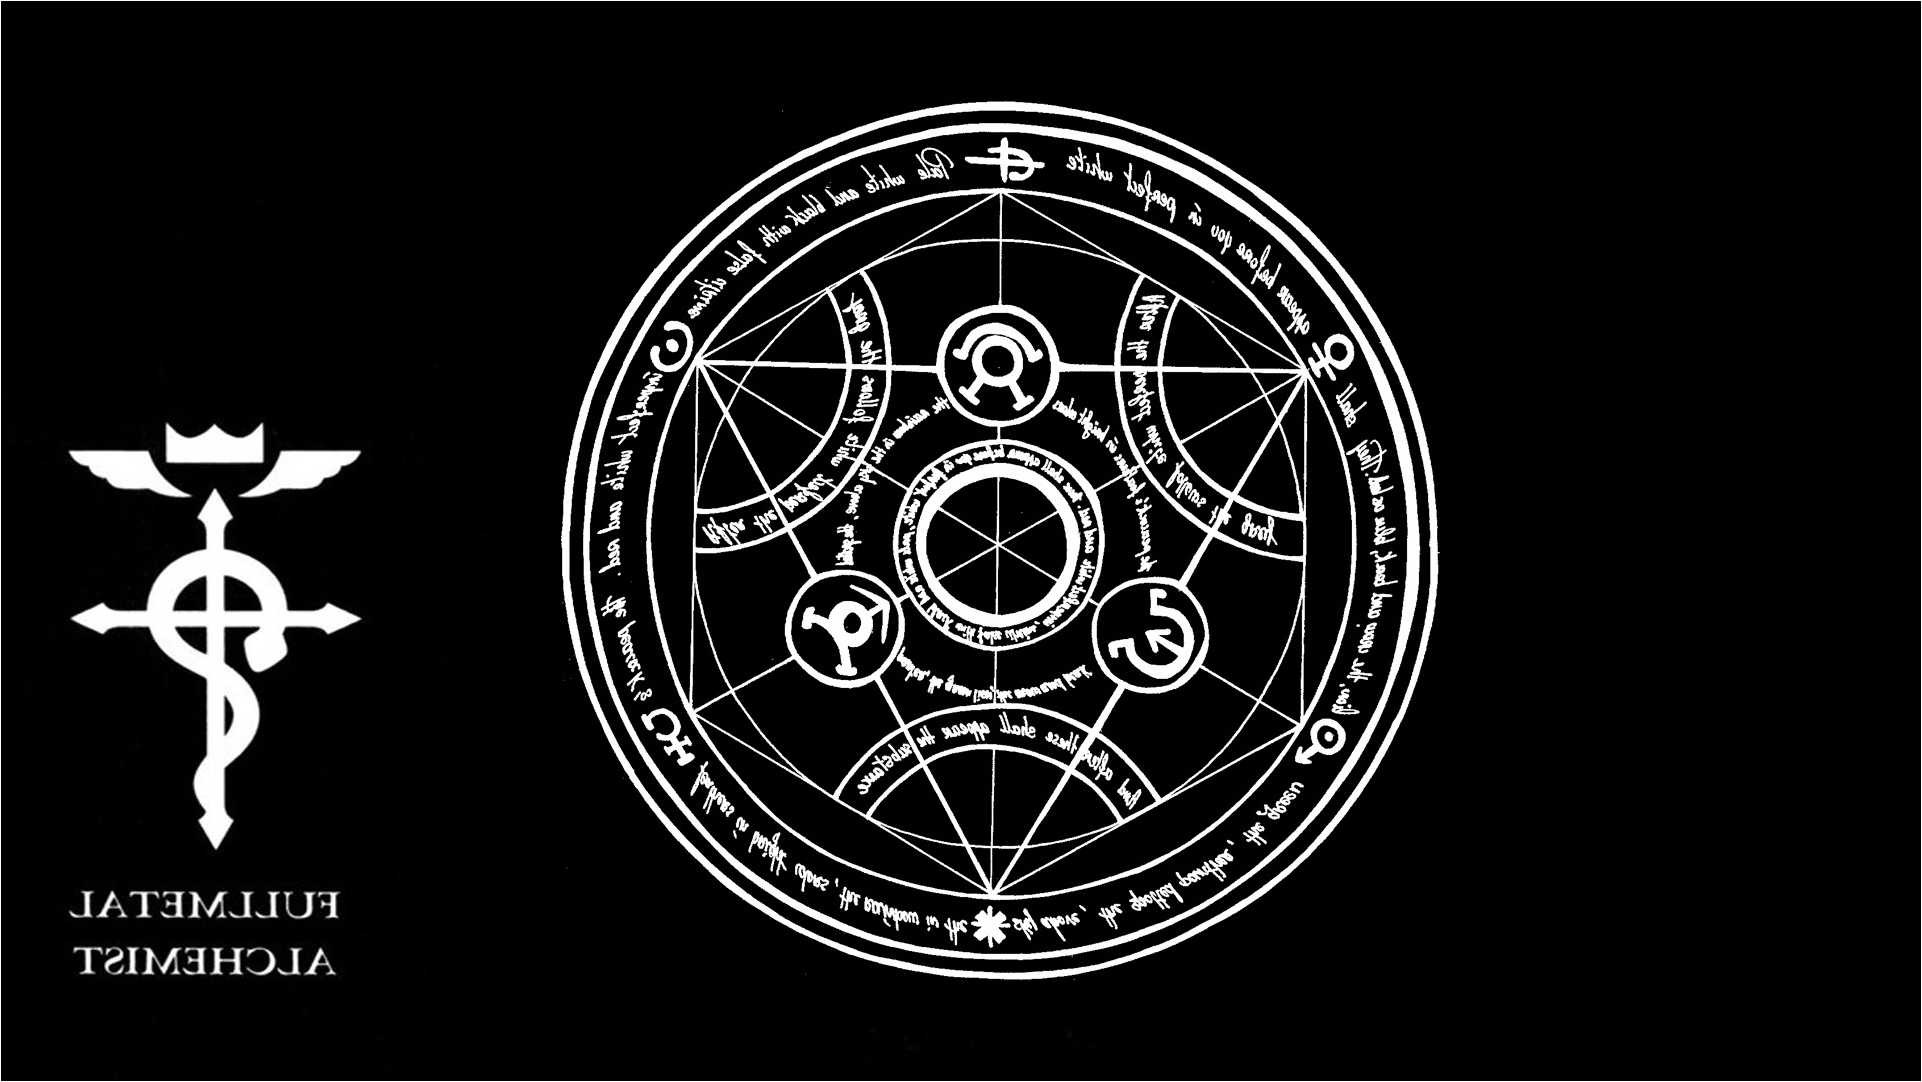 Res: 1922x1082, 02/08/2015: Fullmetal Alchemist Wallpapers, 1920x1080